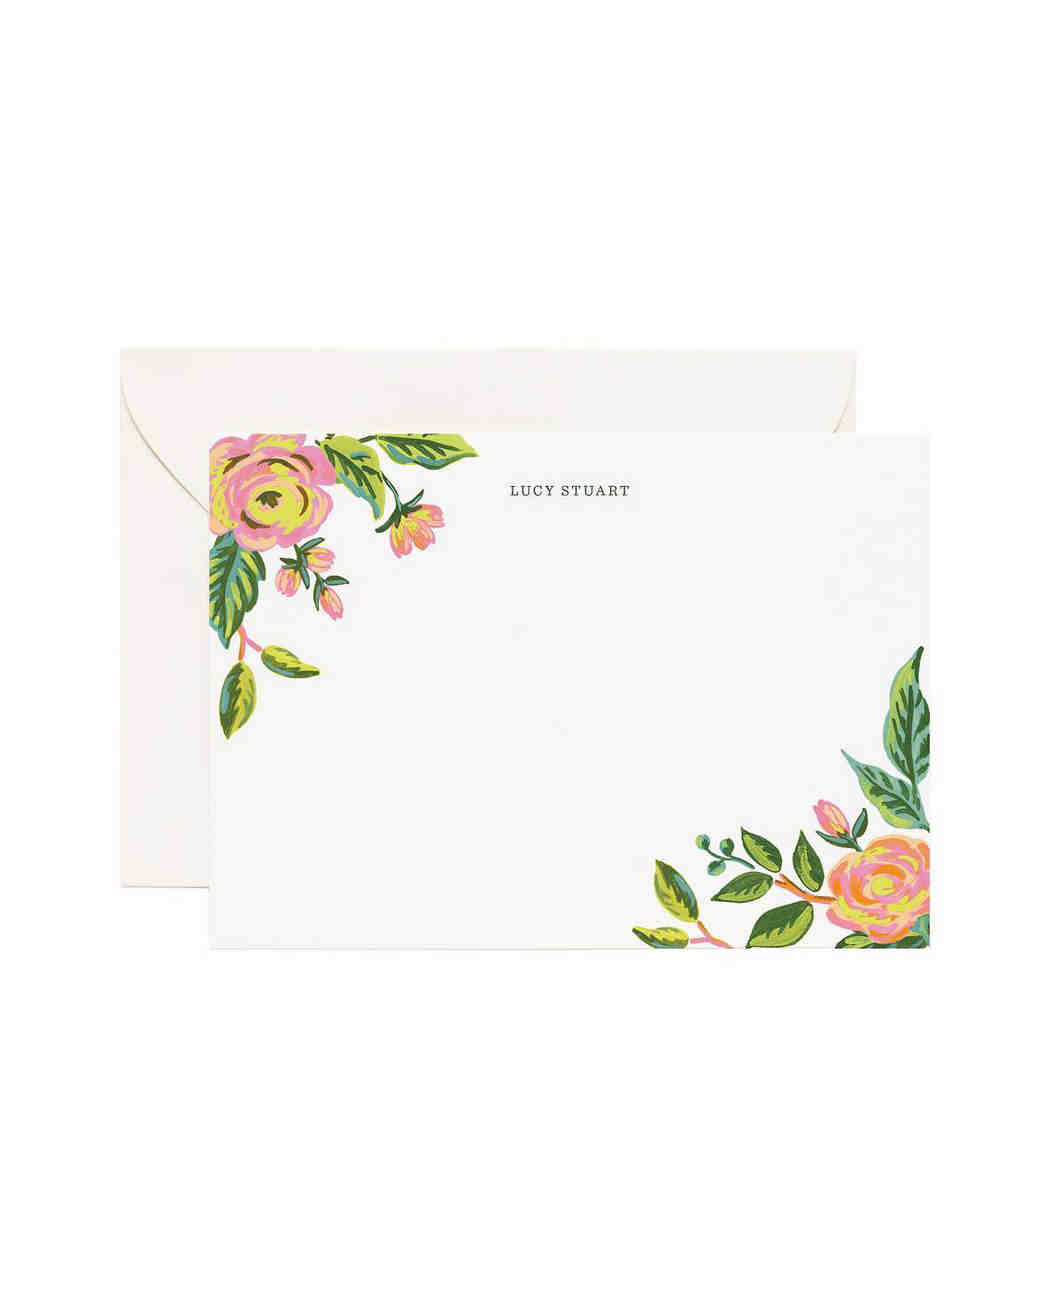 customized stationery